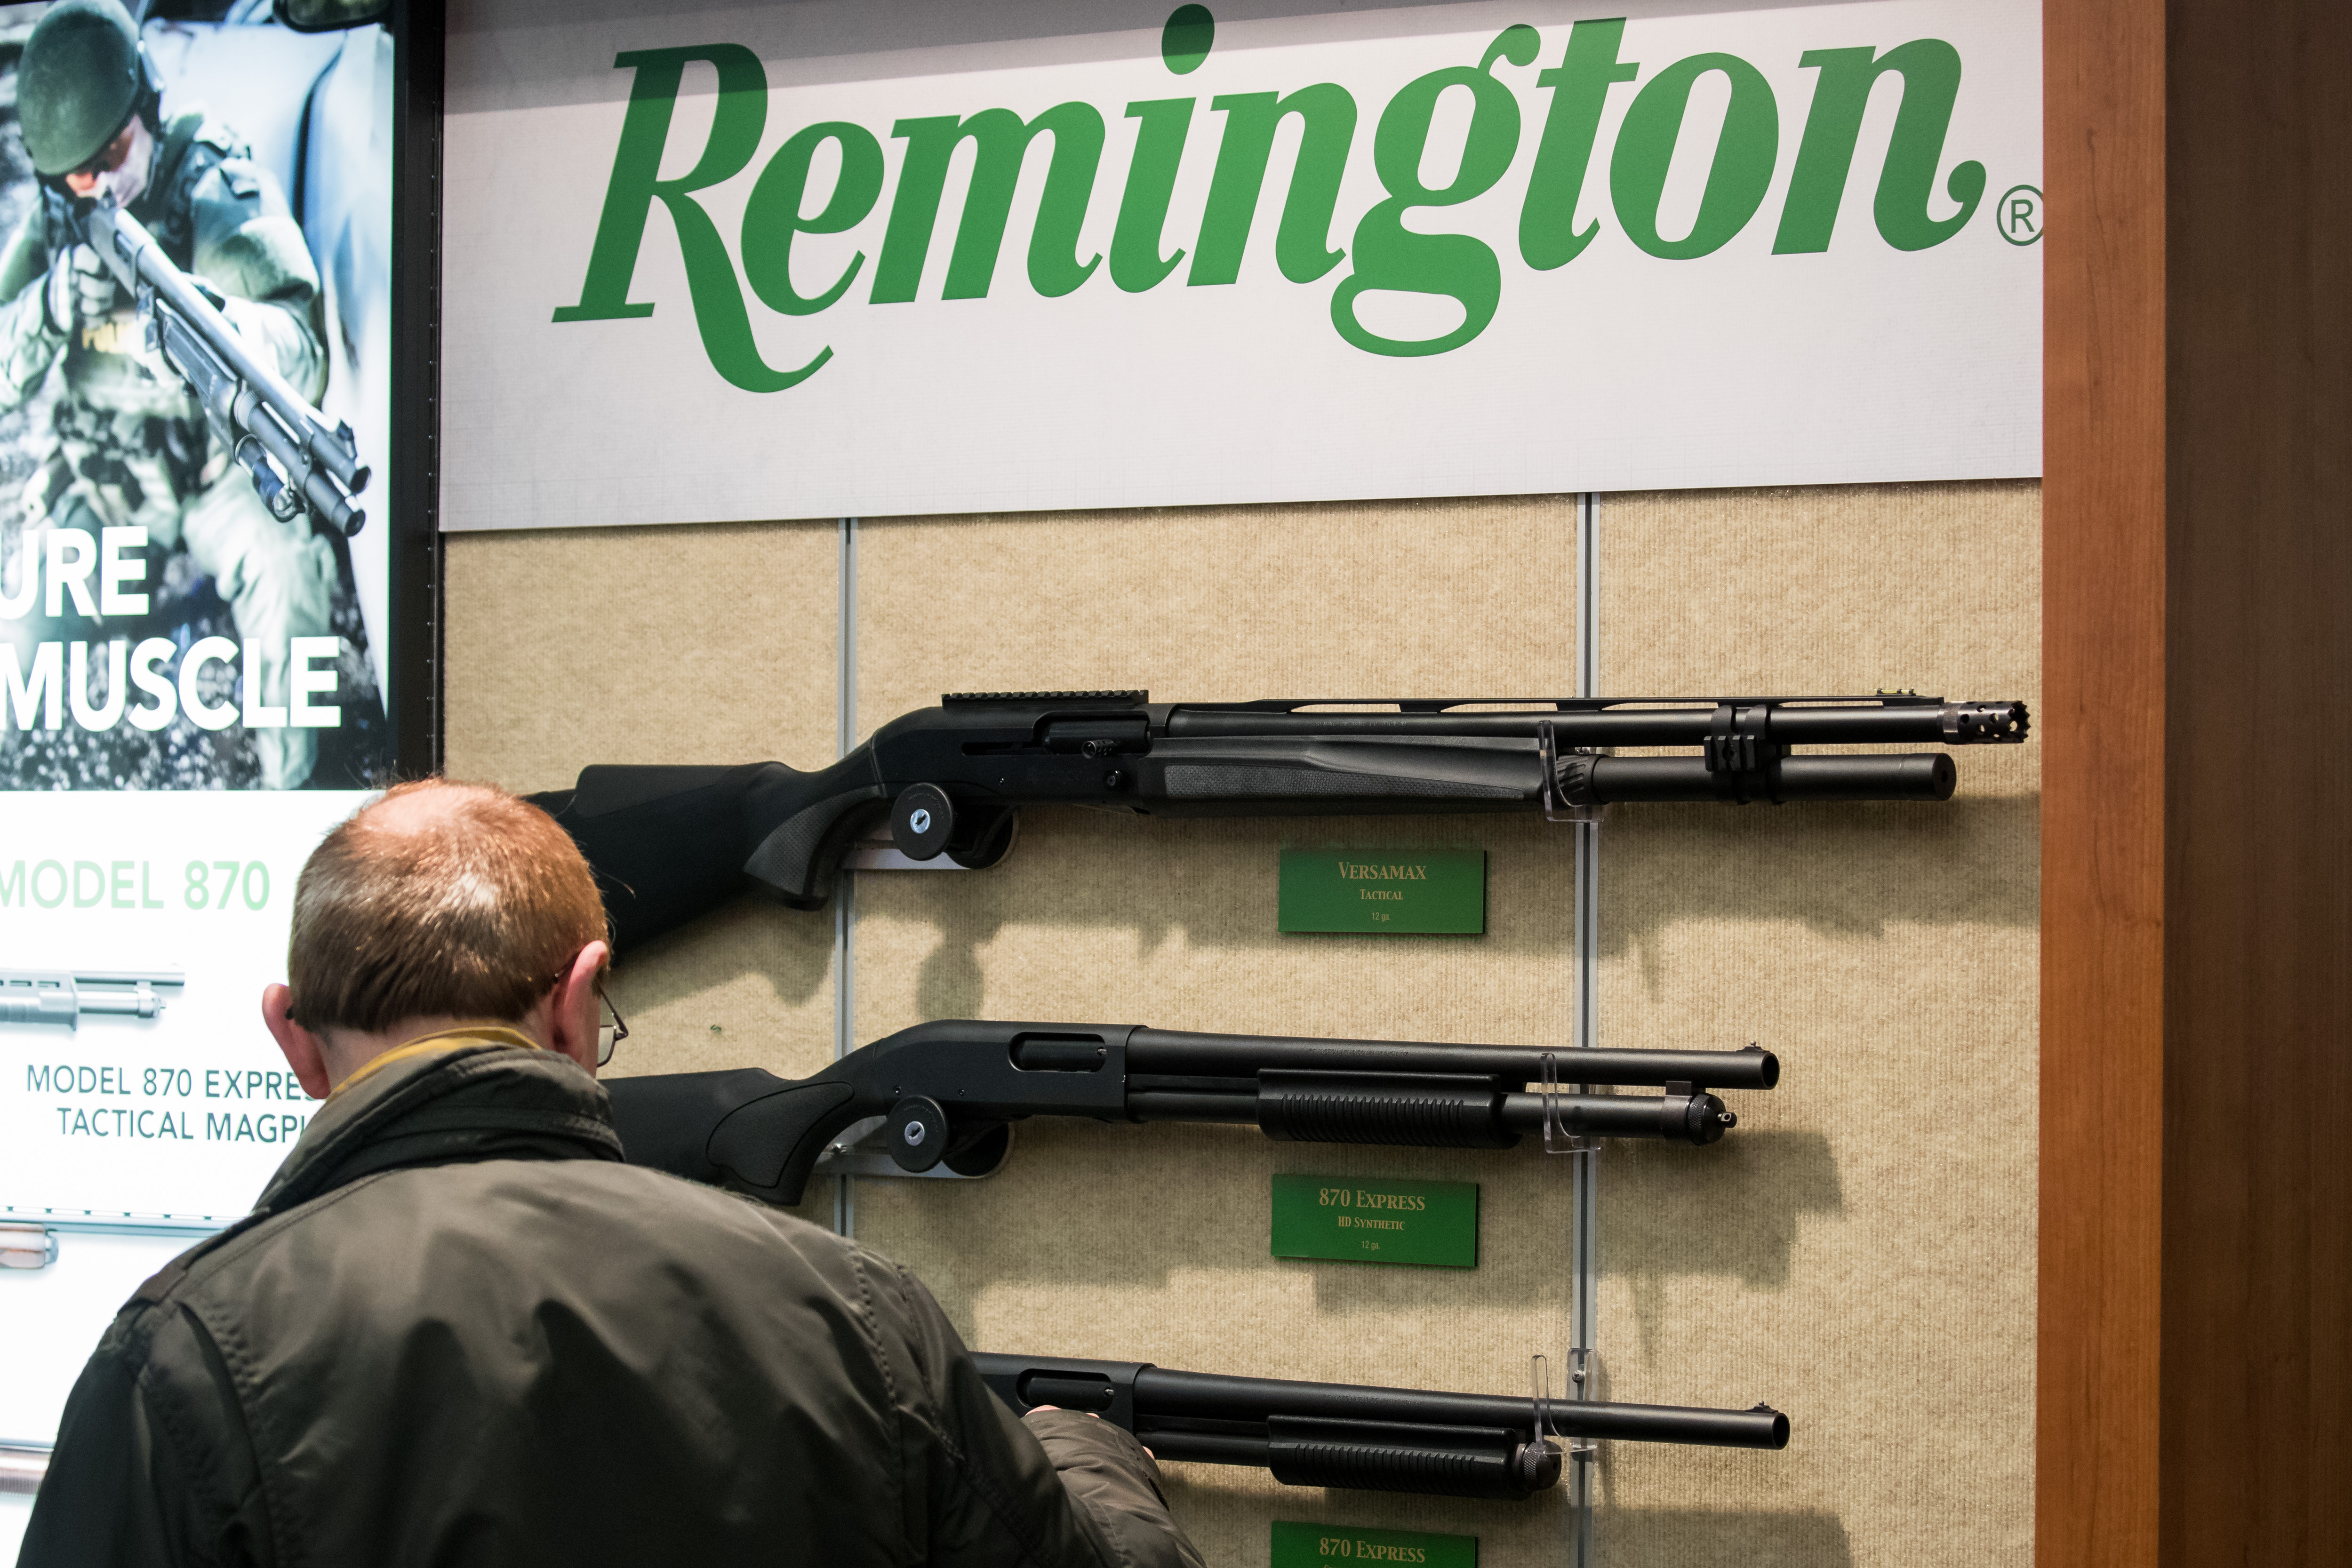 A Remington logo in green text on a white background hangs over a display of three long, black rifles. A man looks at the display.